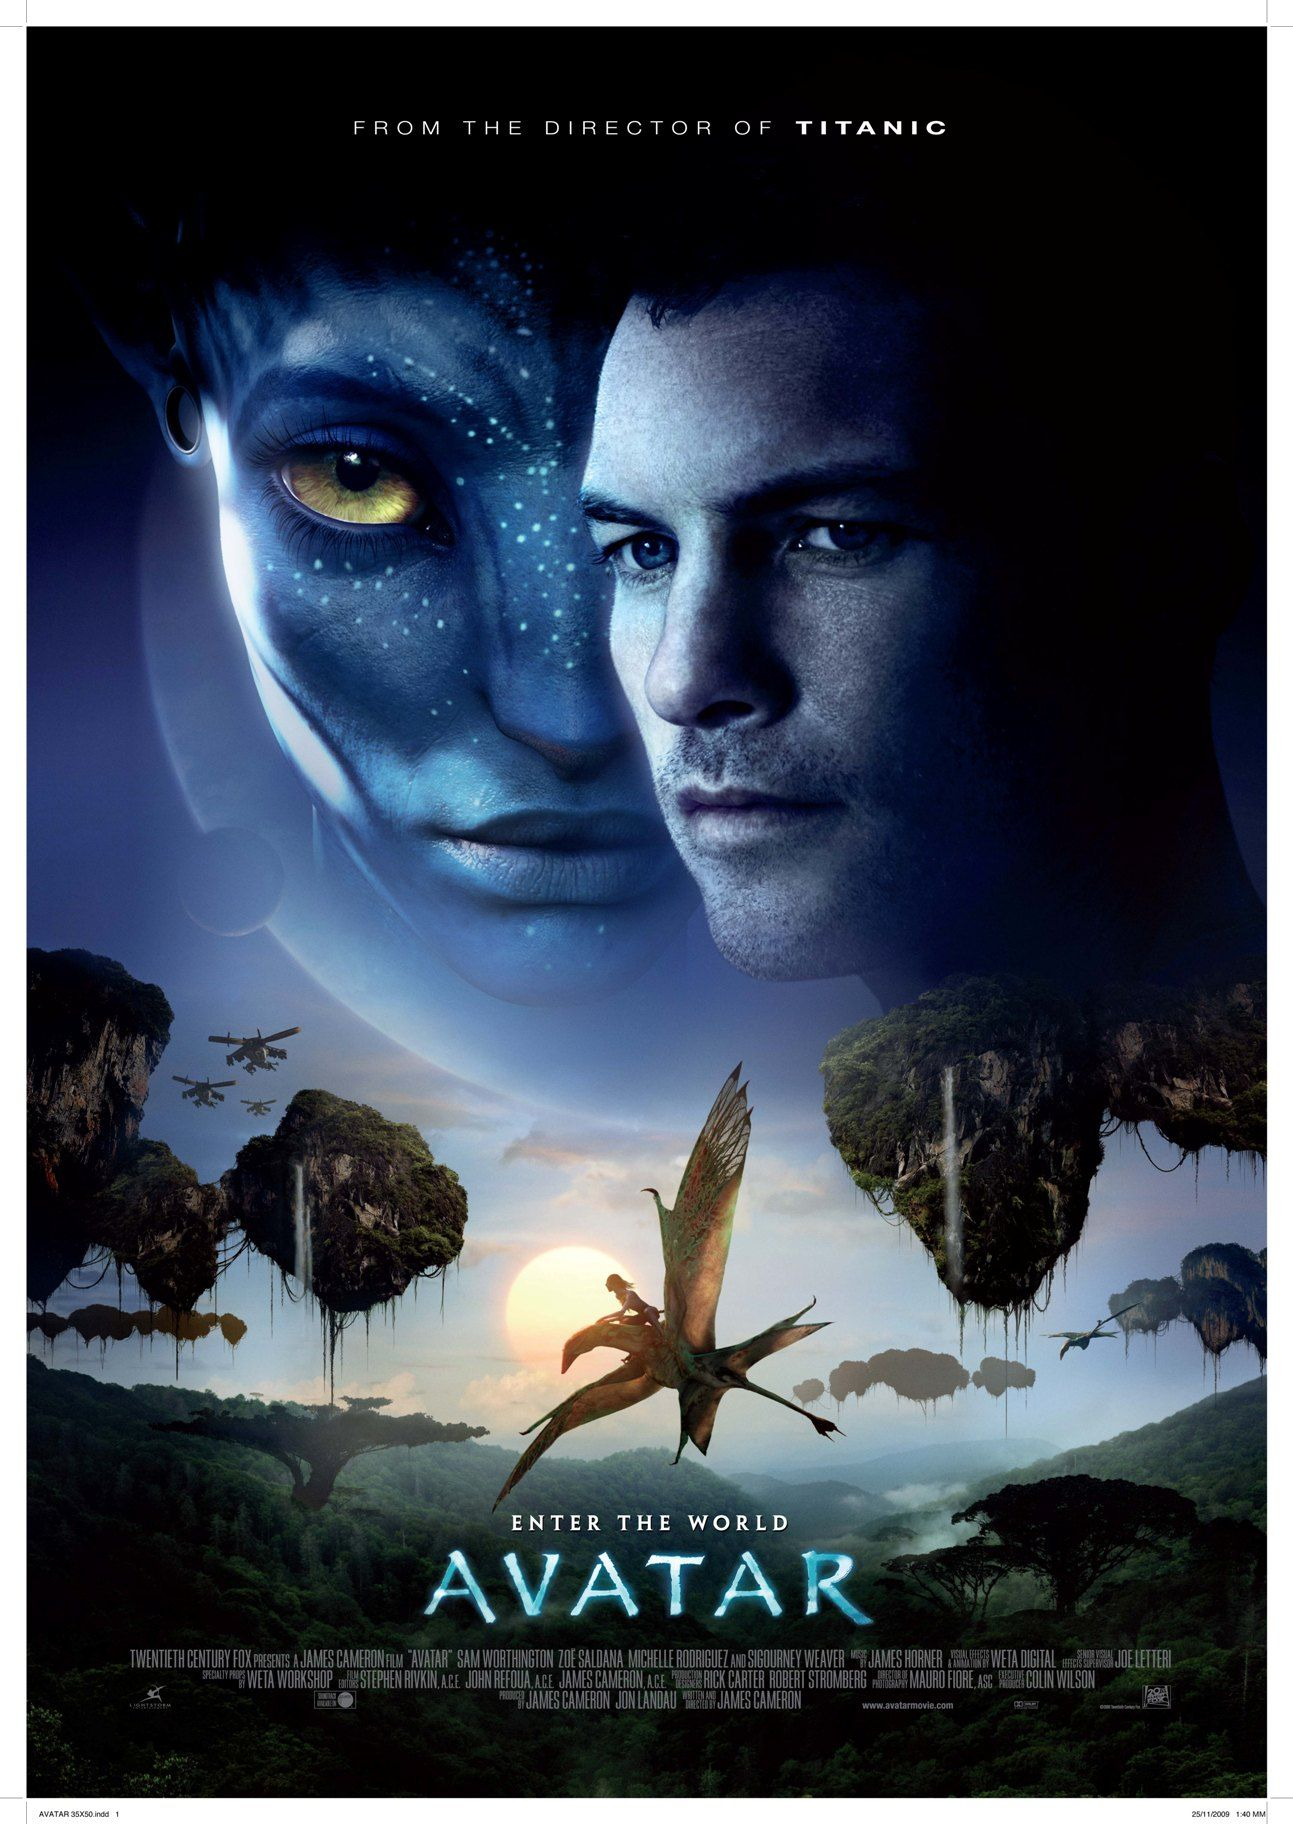 Avatar Movie Poster 2009 The Official Budget 237 Million Other Estimates Put The Cost Between 280 Million Avatar Full Movie Avatar Movie Avatar Films